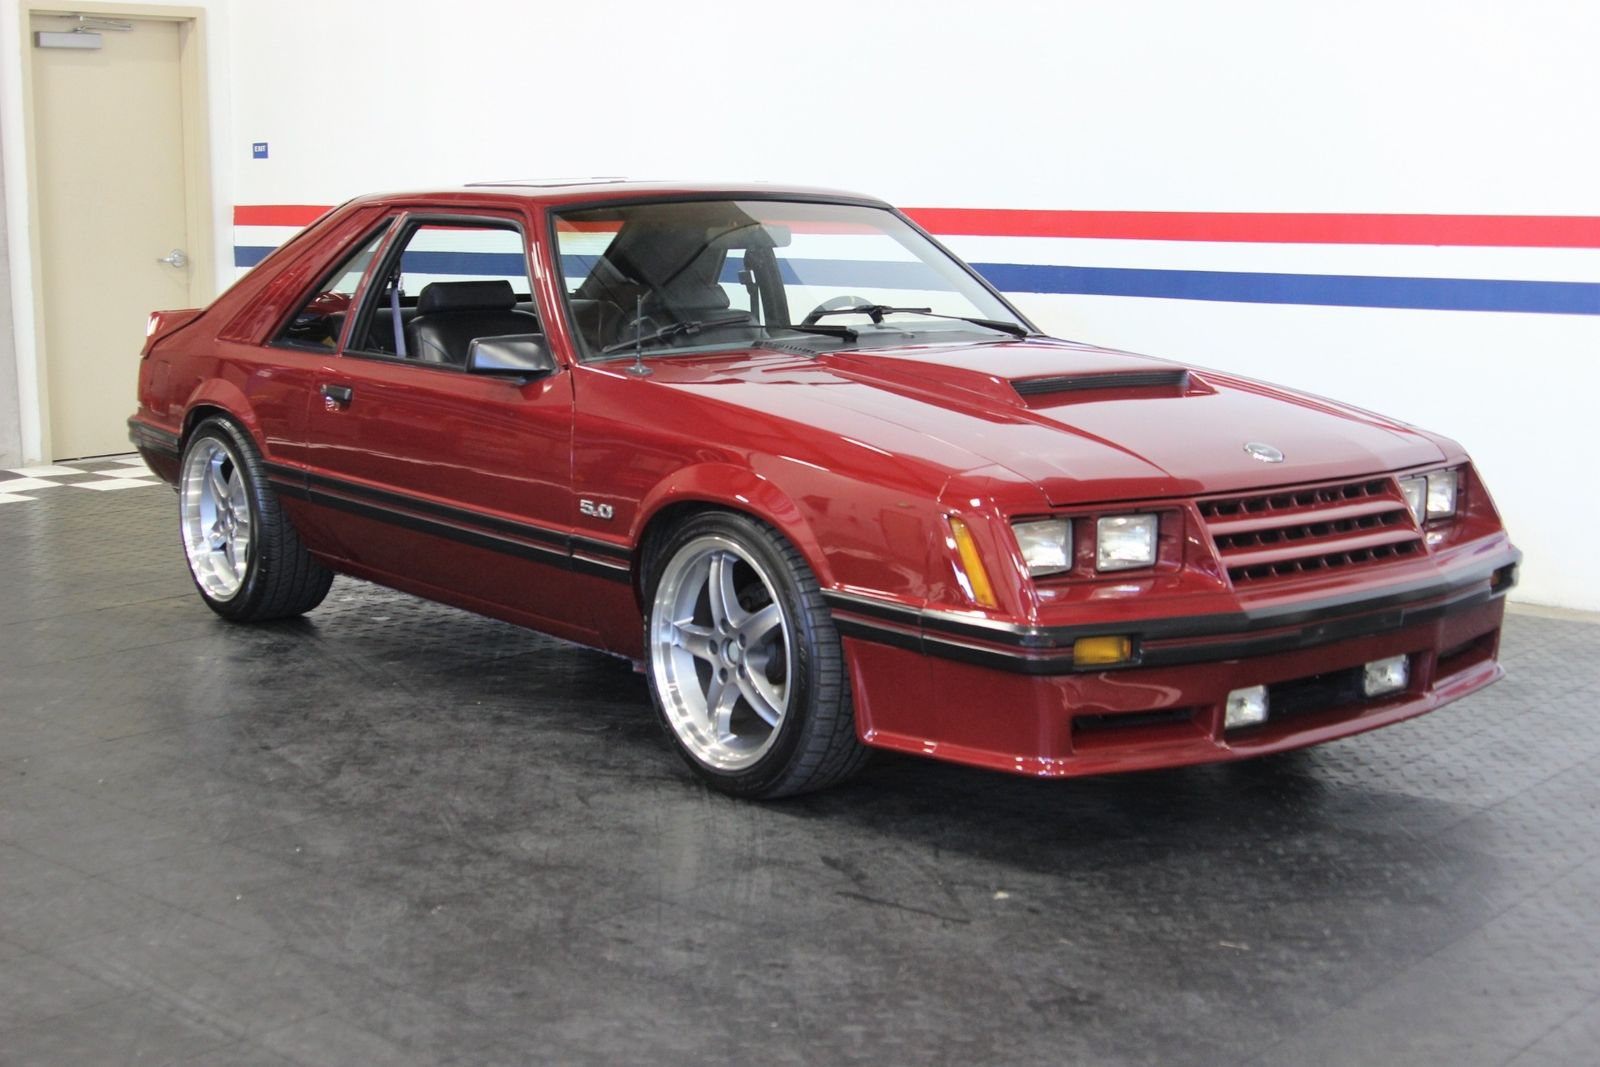 Awesome 1988 ford mustang gt beautiful fox body survivor 1988 mustang gt hatchback 69000 original miles 2018